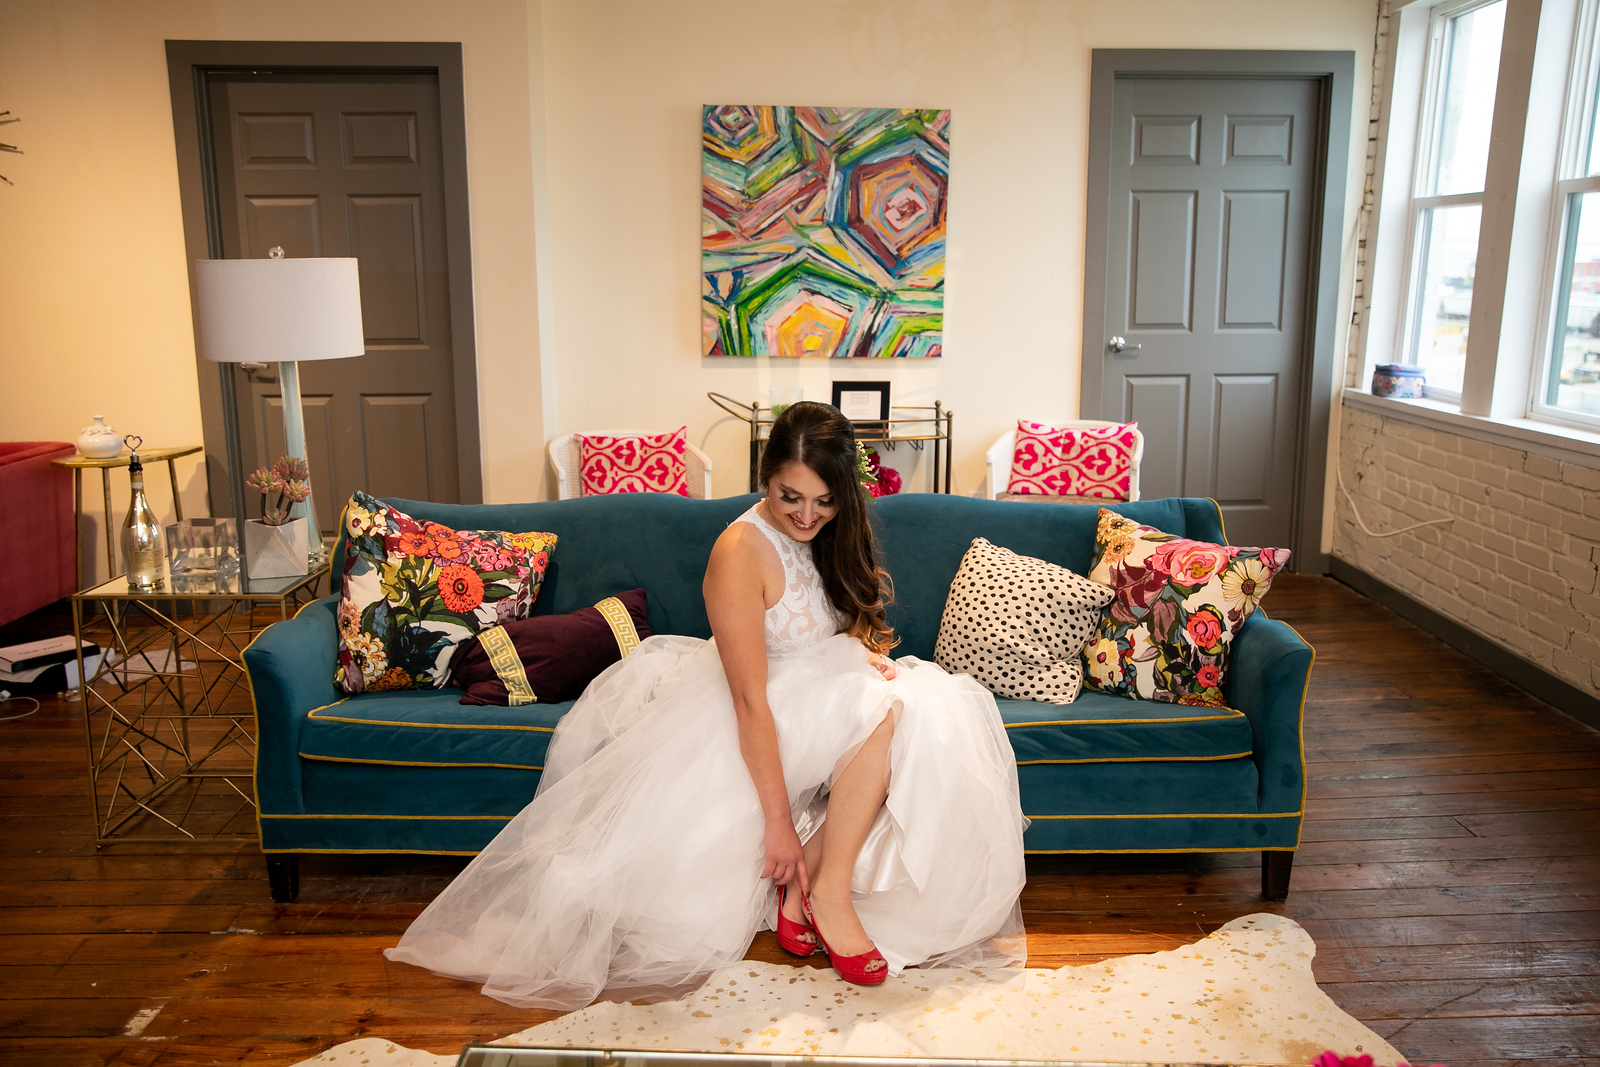 bride slipping into her read wedding heals as she sits on a boho couch surrounded by mid-century furniture and setting